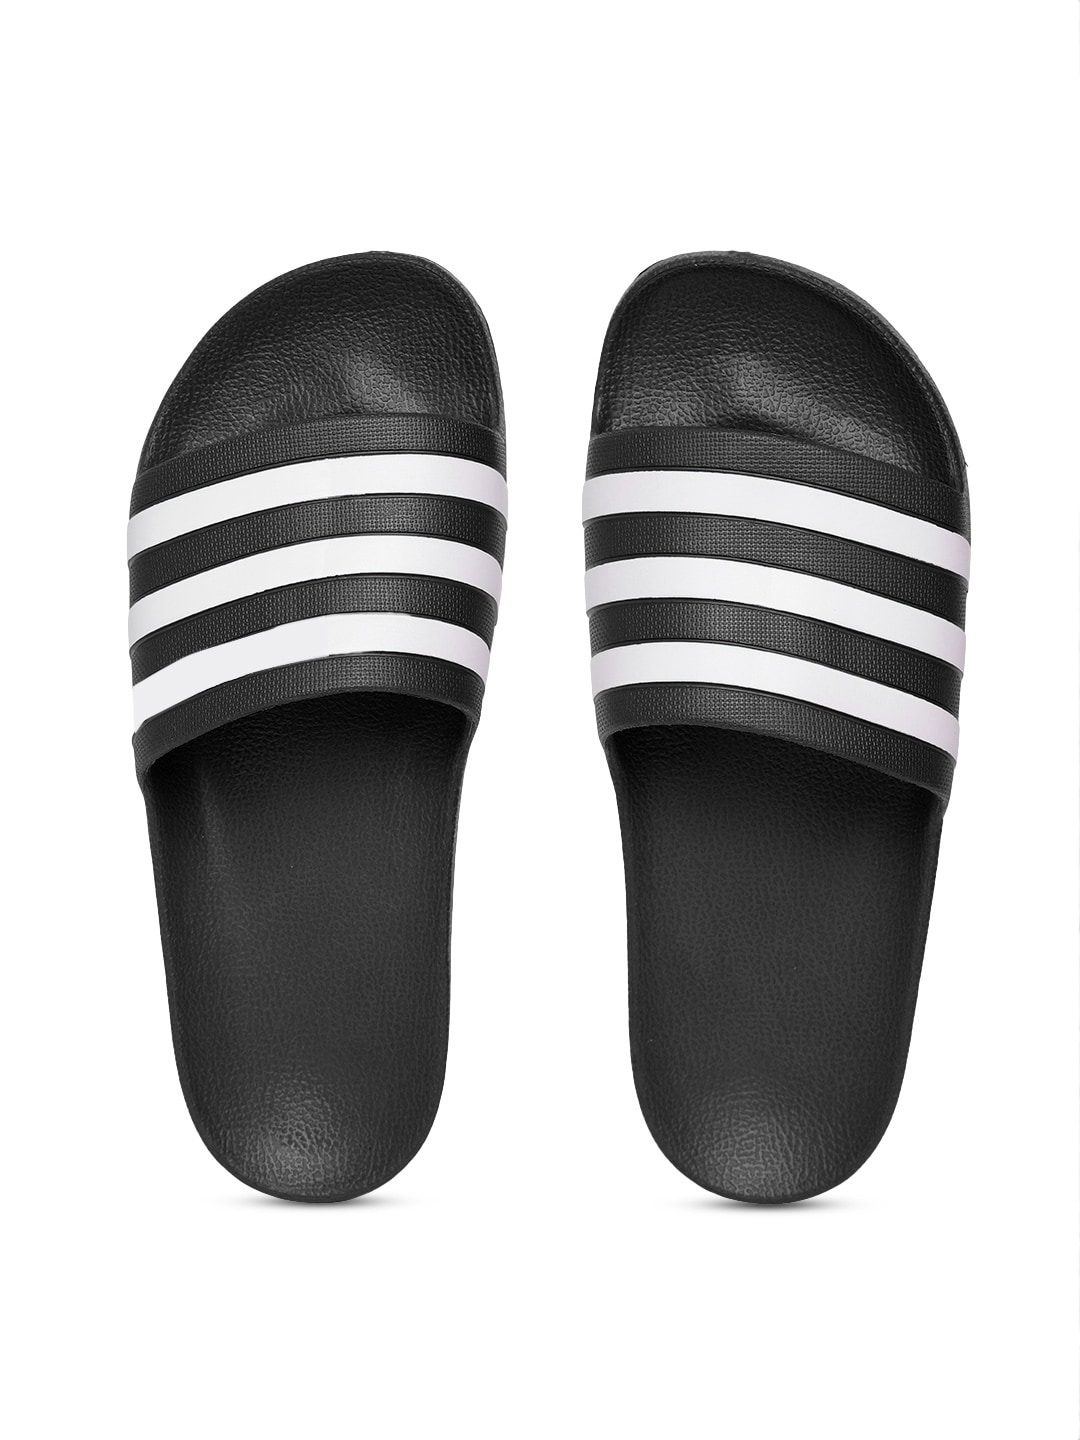 2f1627682c5c Adidas Slides - Buy Adidas Slides online in India